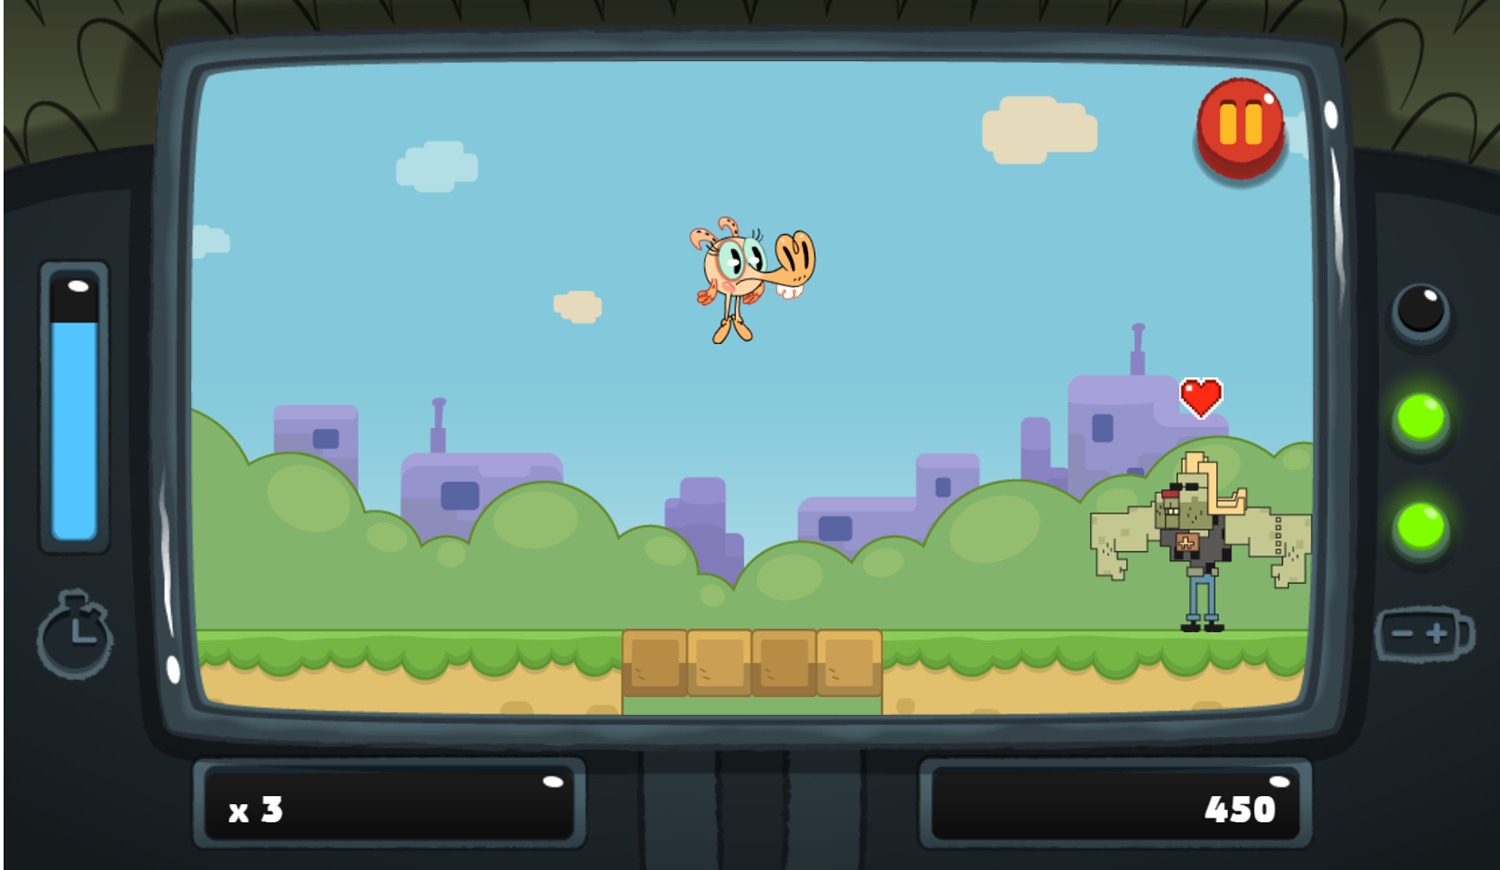 PGBC Game Lad Blitz Game Zap The Monsters Gameplay Screenshot.